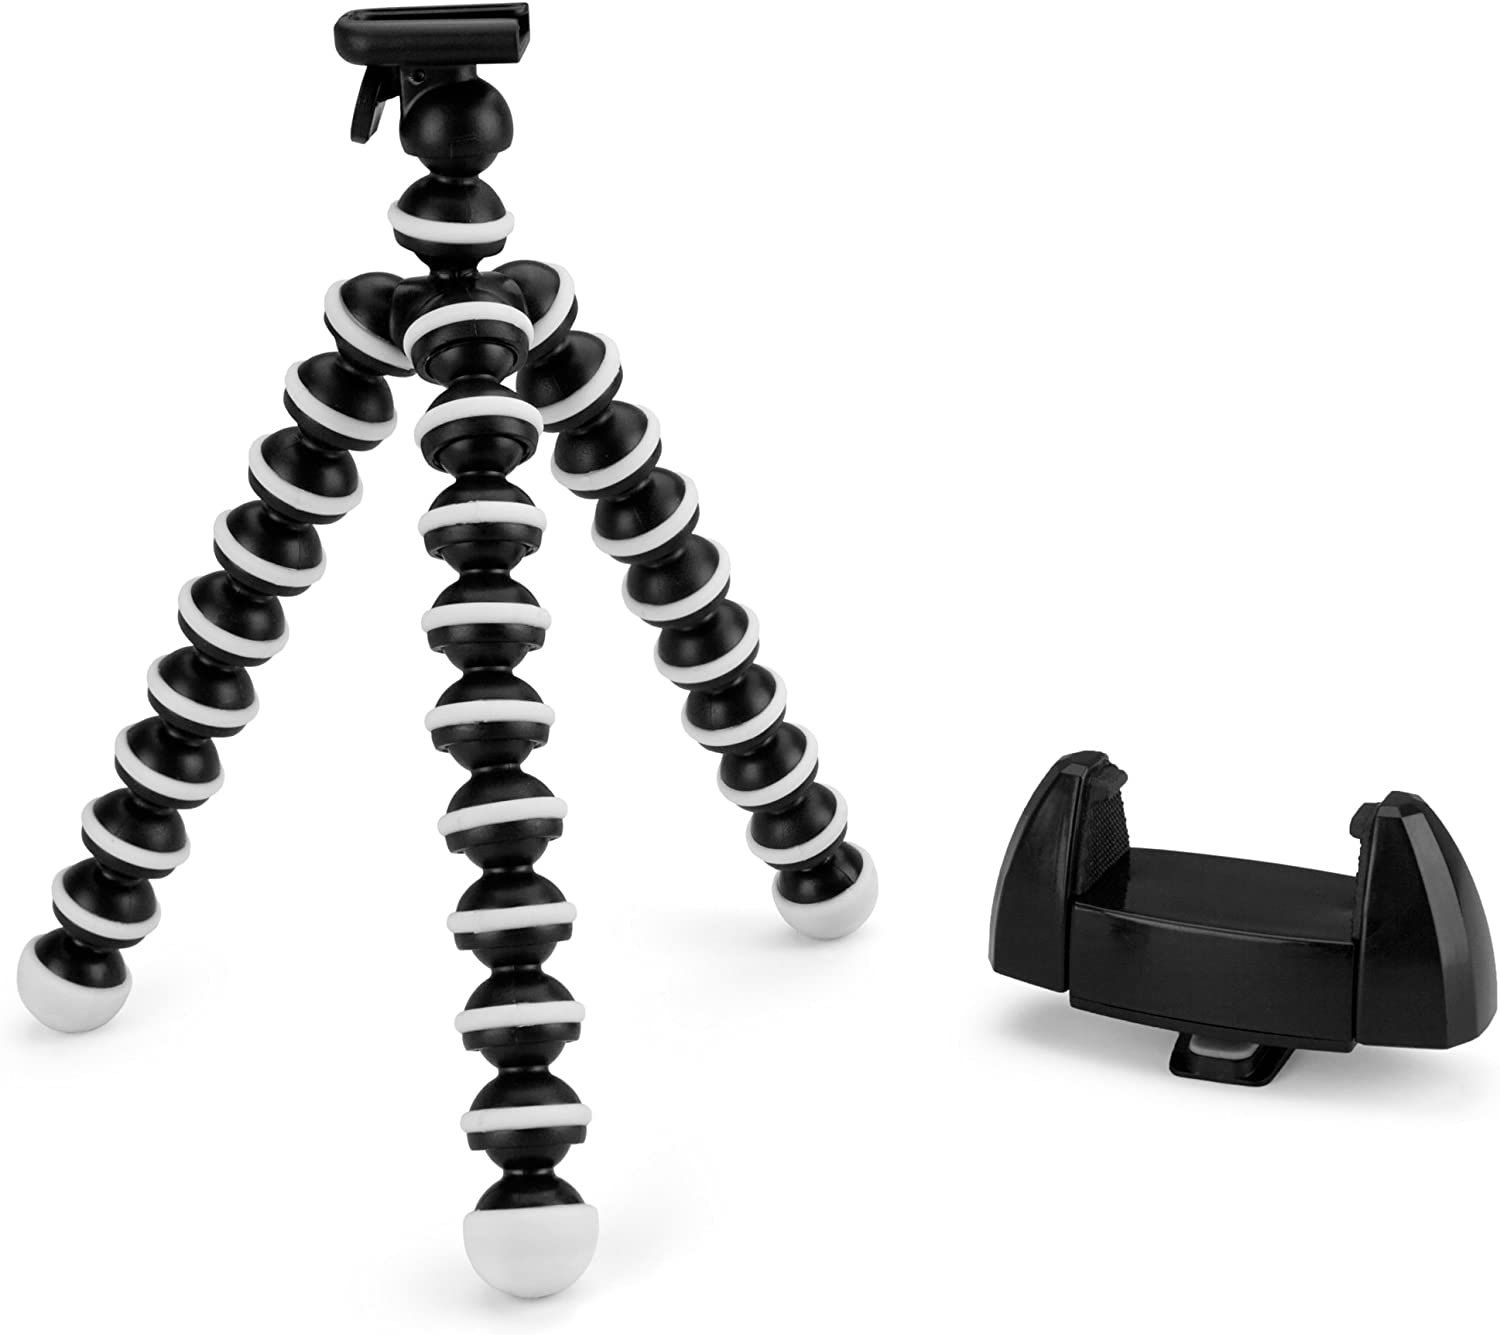 Stand and Mount, BoxWave [SlinkyPod] Portable Universal Tripod and Hands Free Mount for Smartphones and Tablets